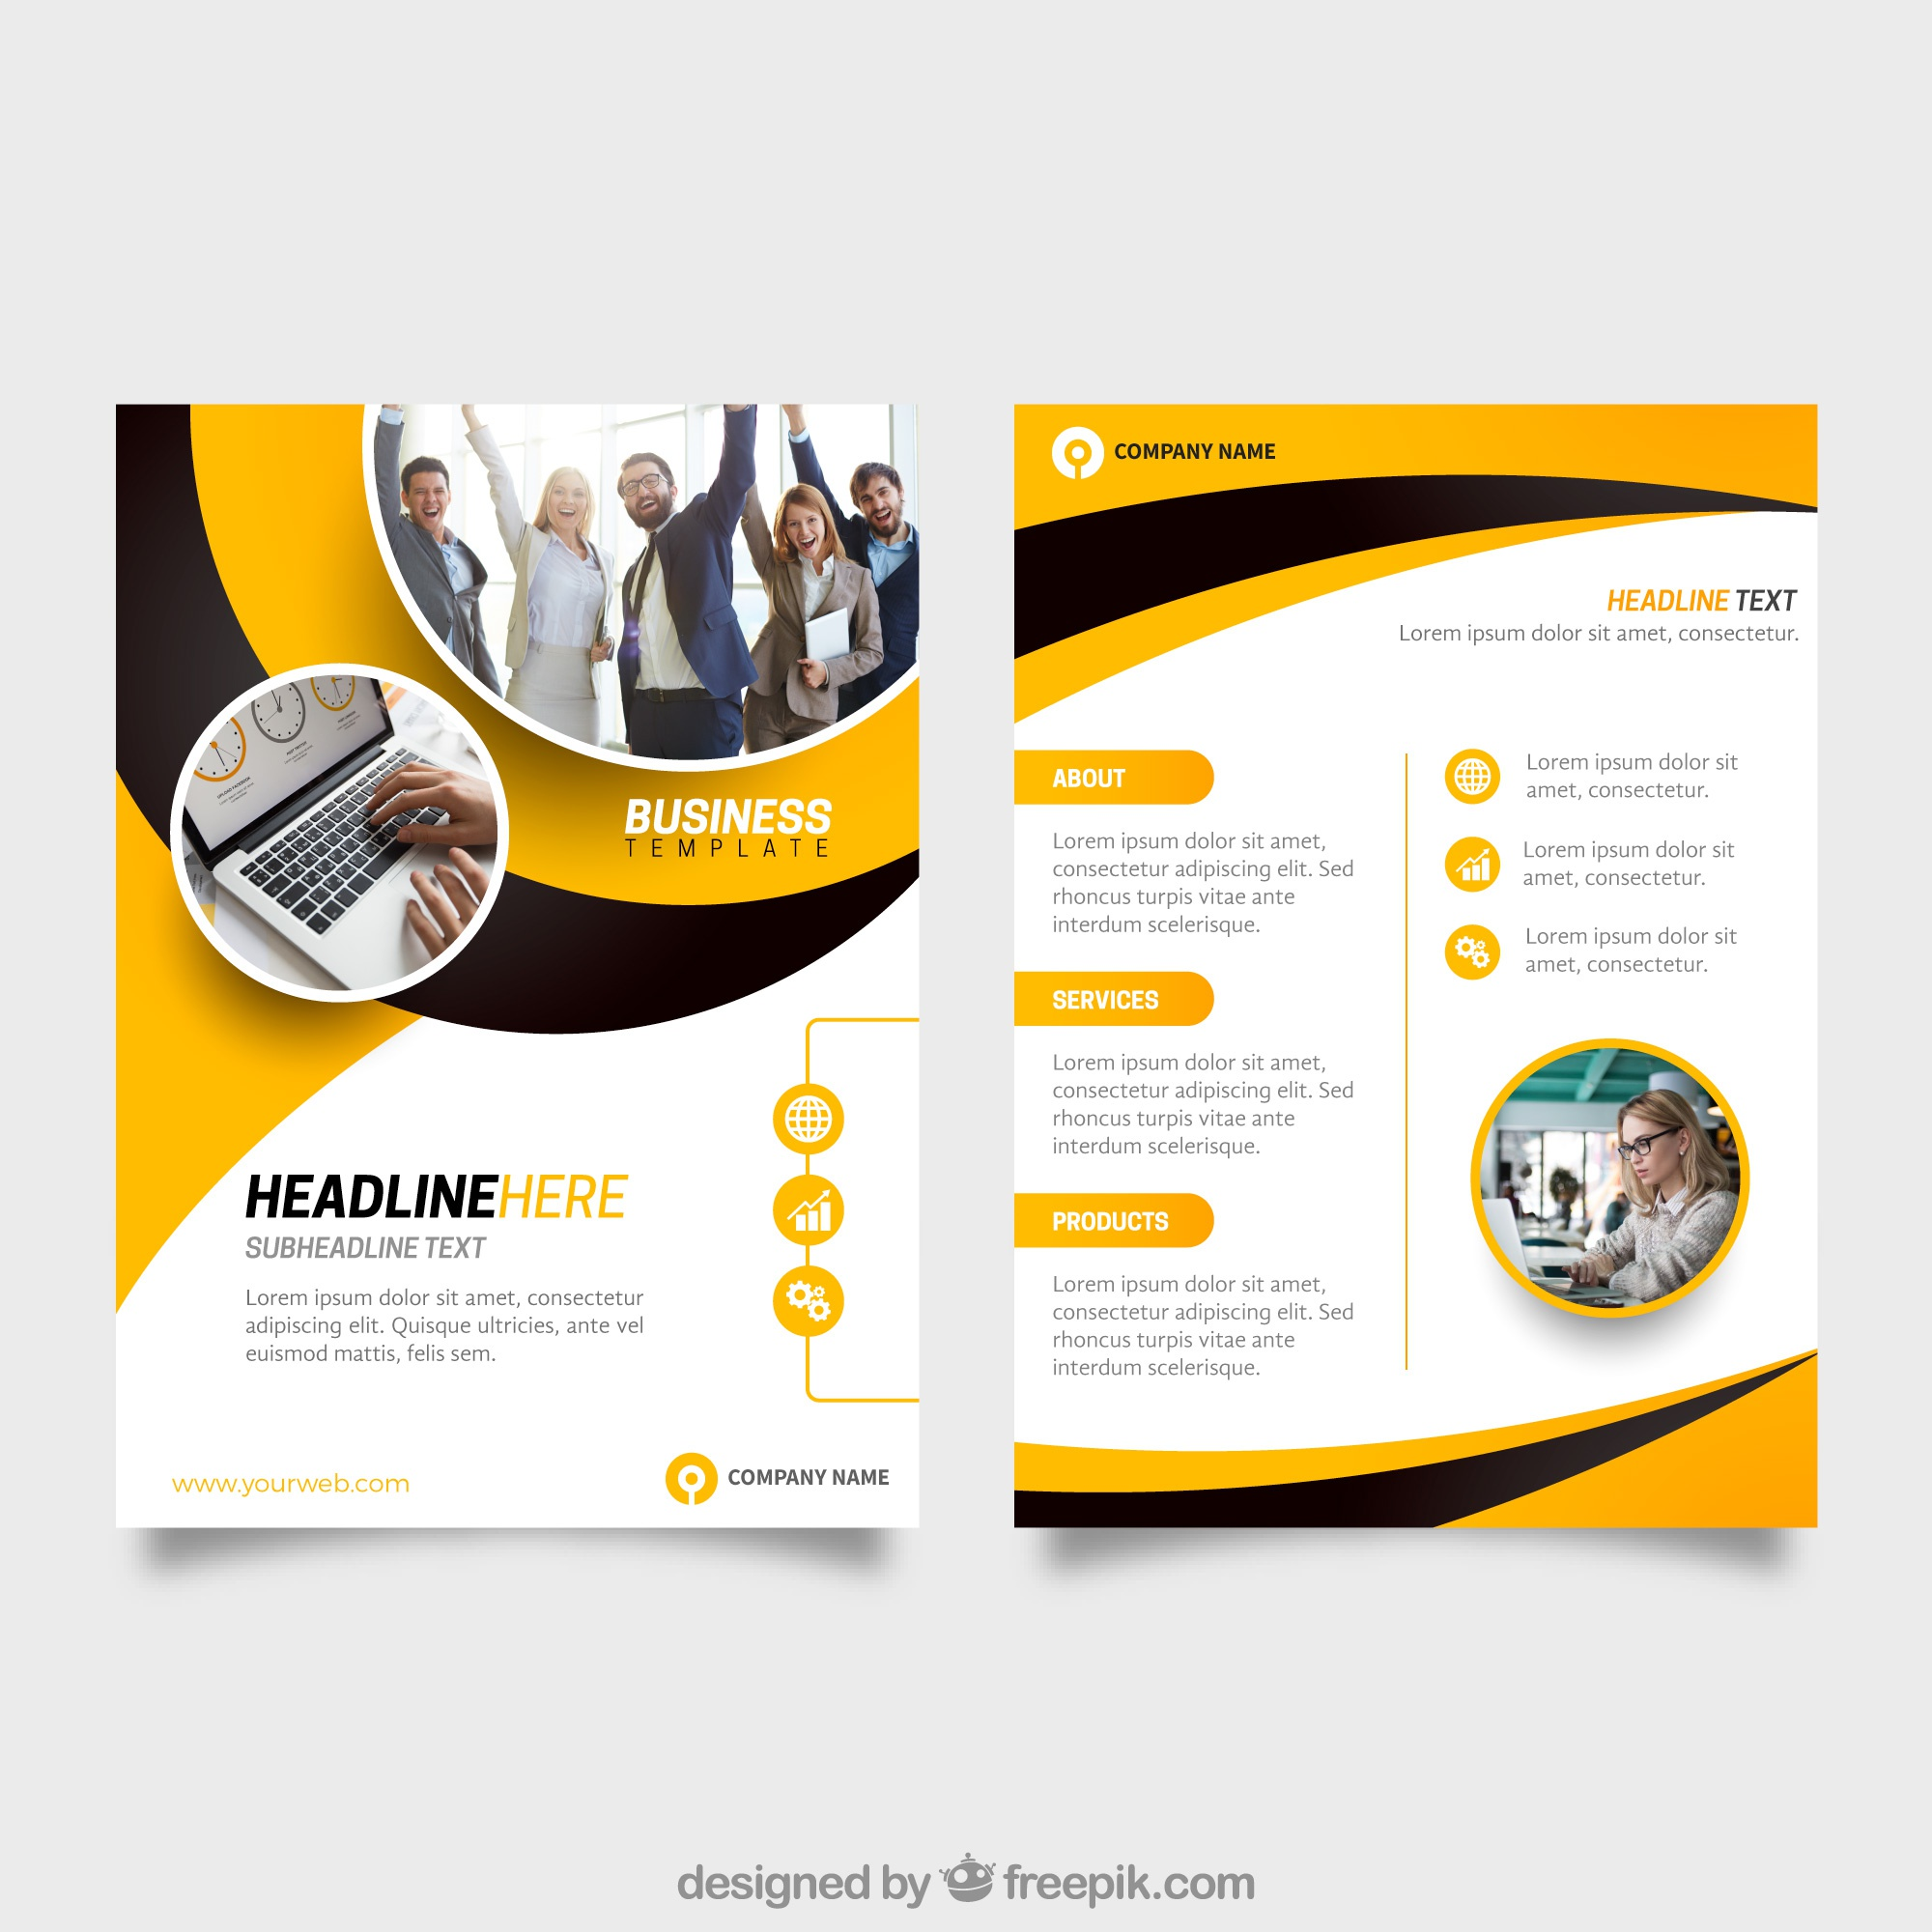 Templates vectors 247300 free files in eps format yellow and black business flyer template wajeb Gallery